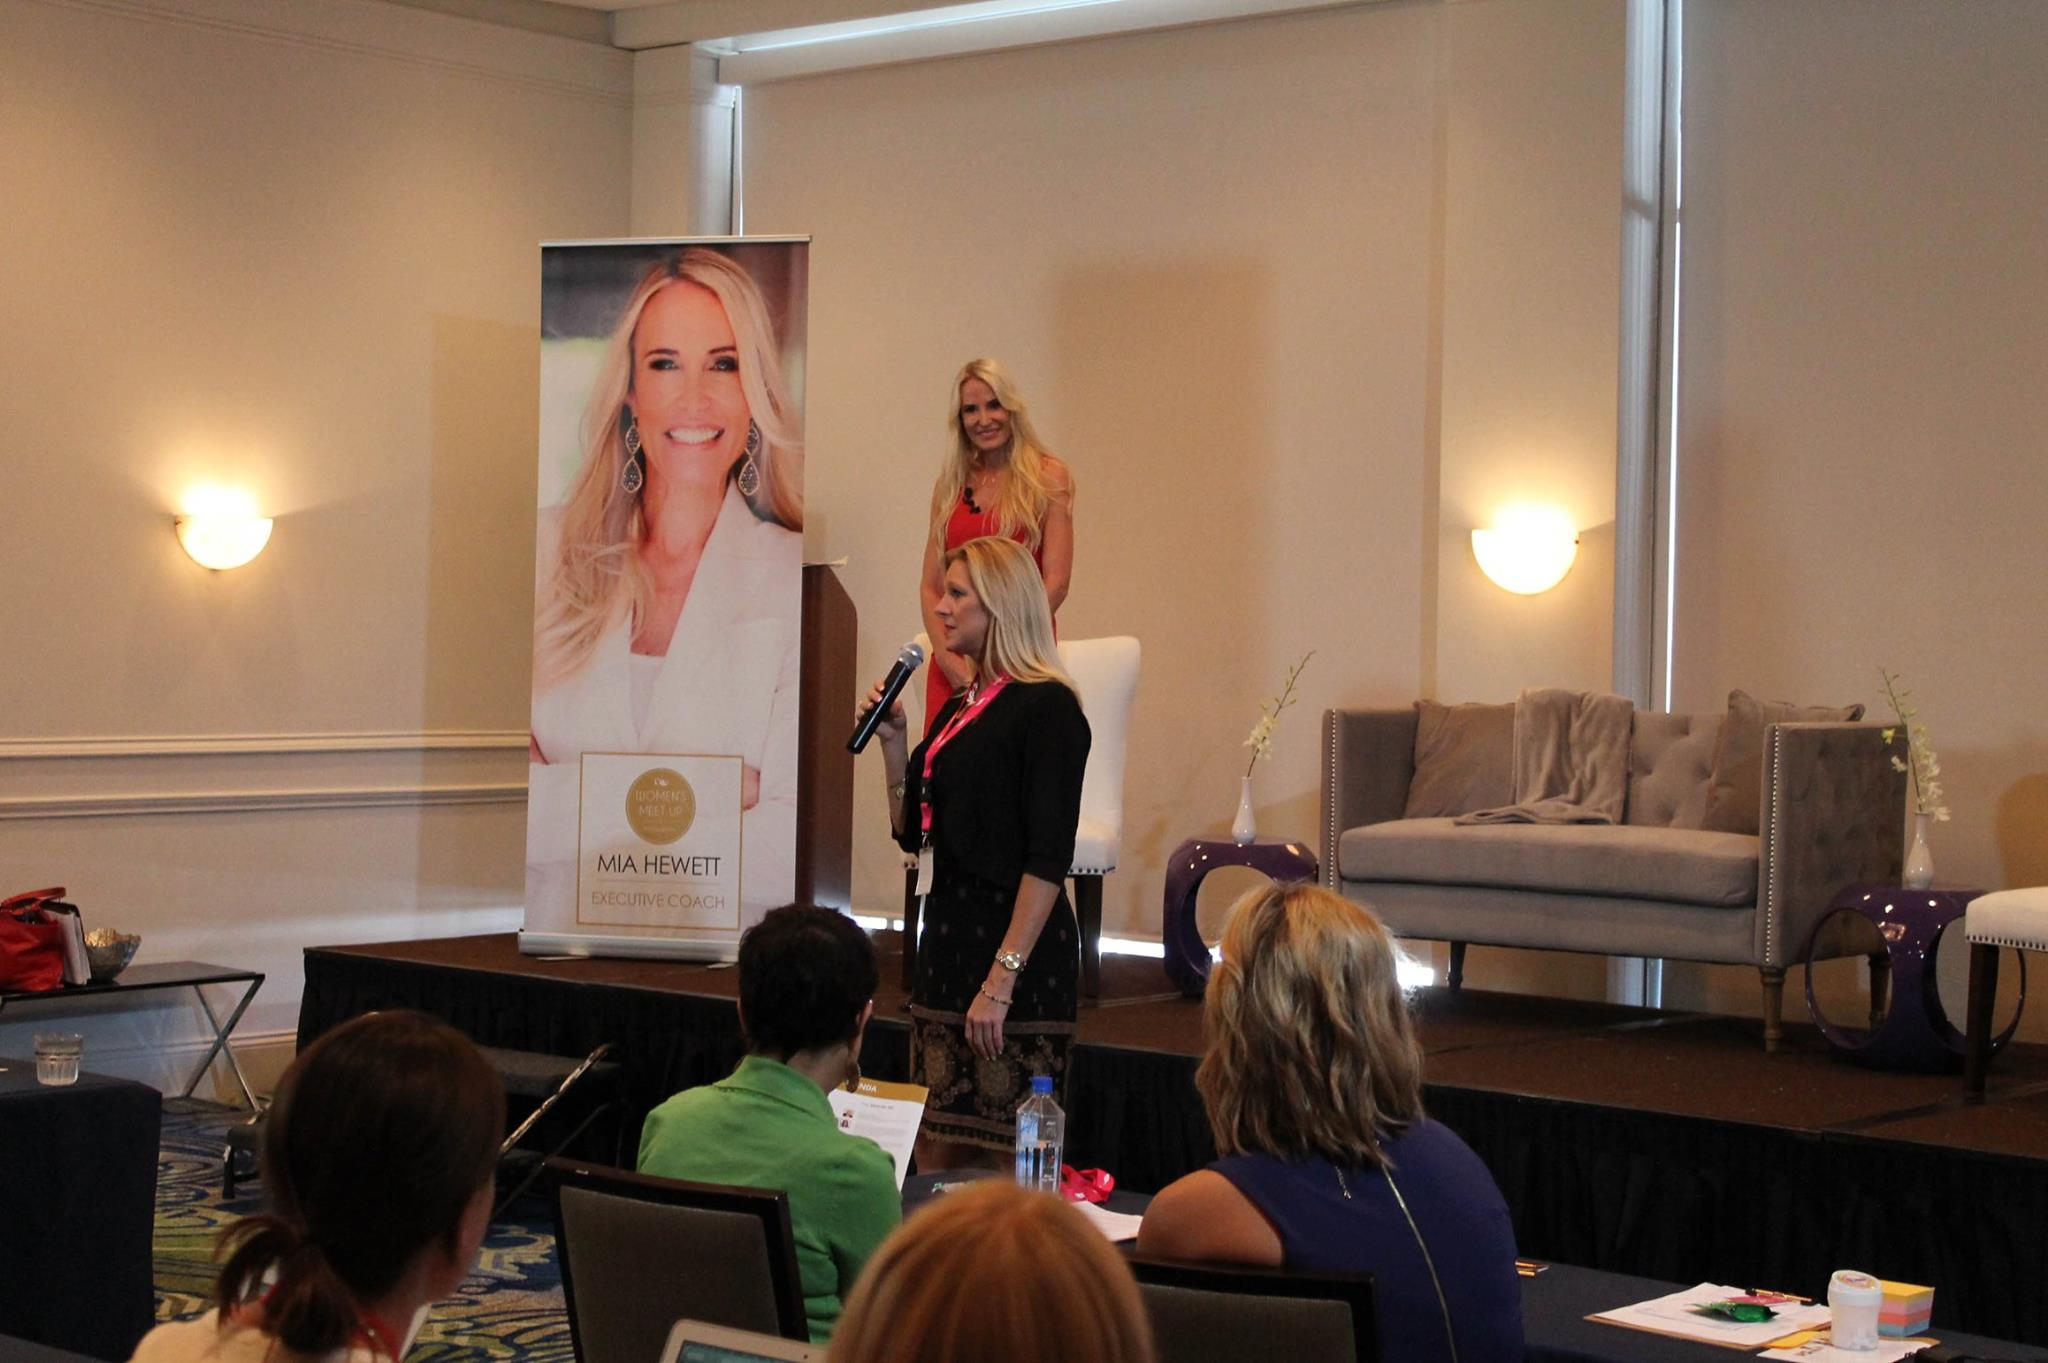 Mia Hewett encouraged attendees to share their stories, image courtesy of 32Events